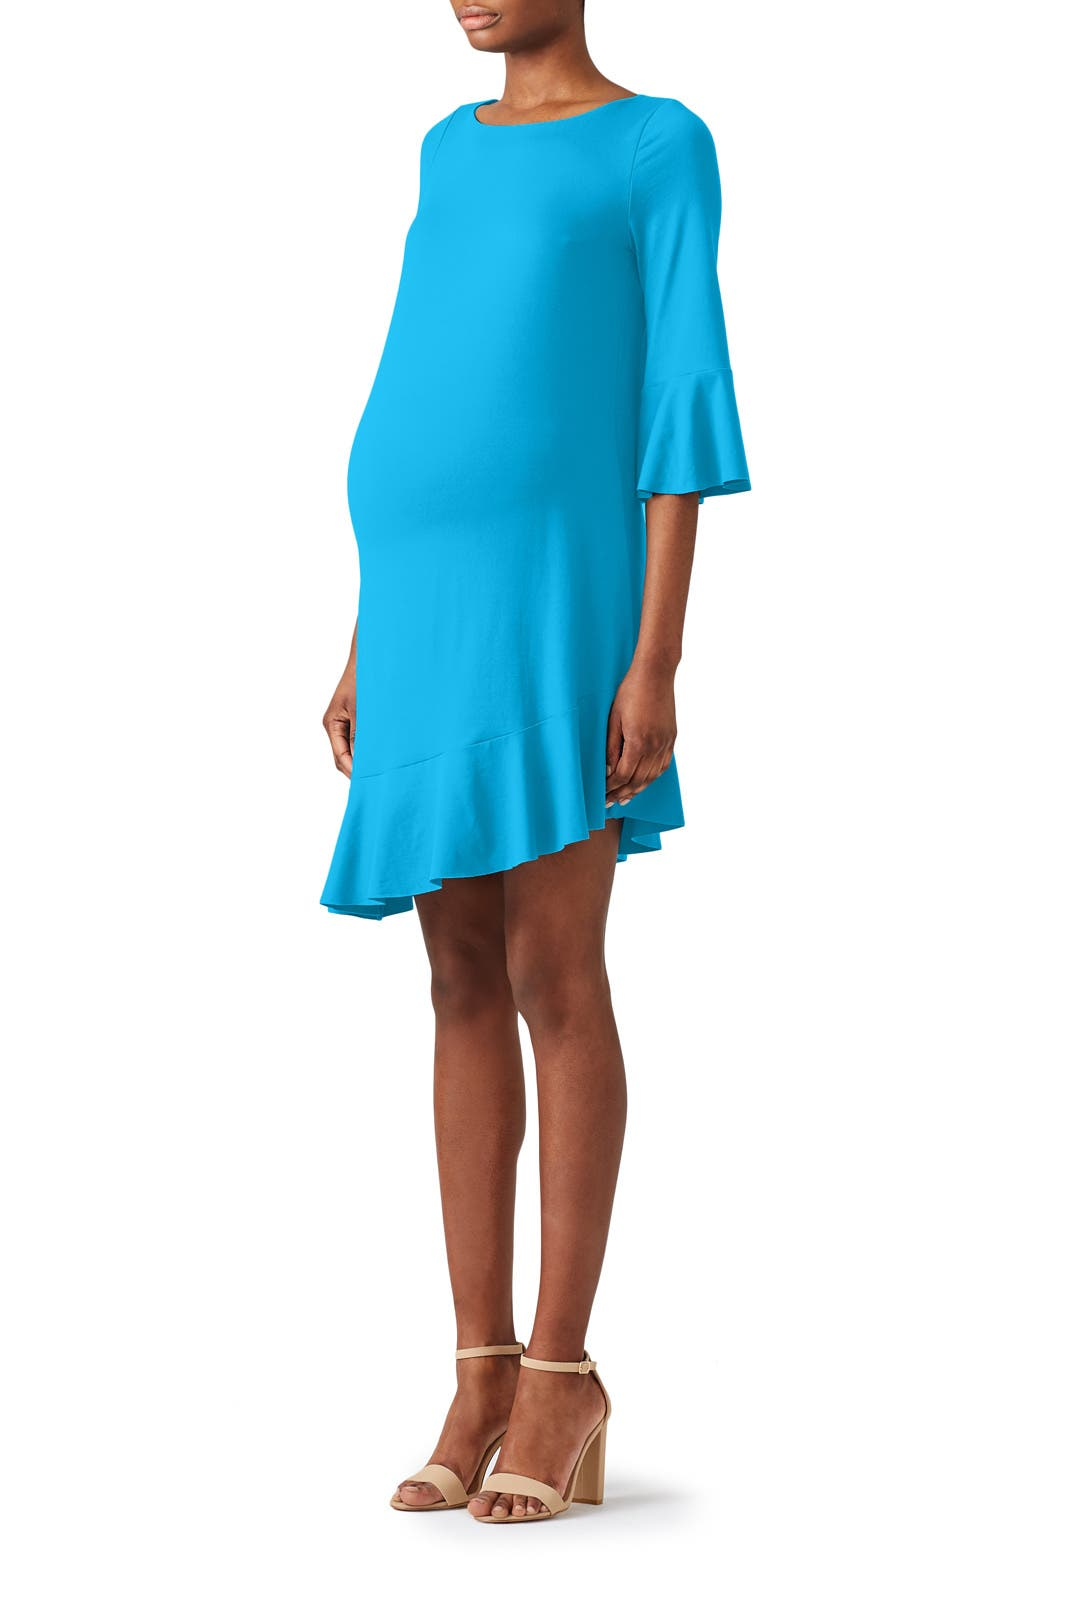 Blue Ruffle Maternity Dress by Susana Monaco for $35 | Rent the Runway